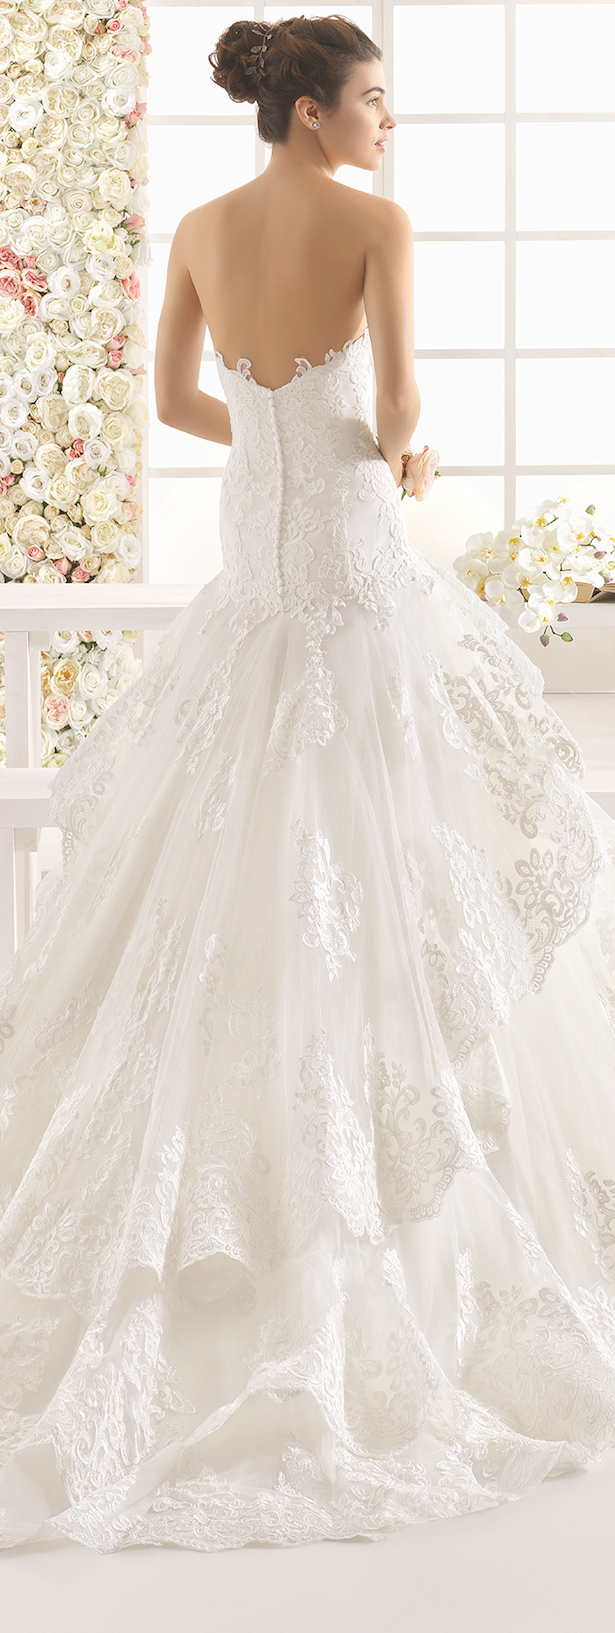 Wedding Dresses By Aire Barcelona 2017 Bridal Collection | Part 2 ...